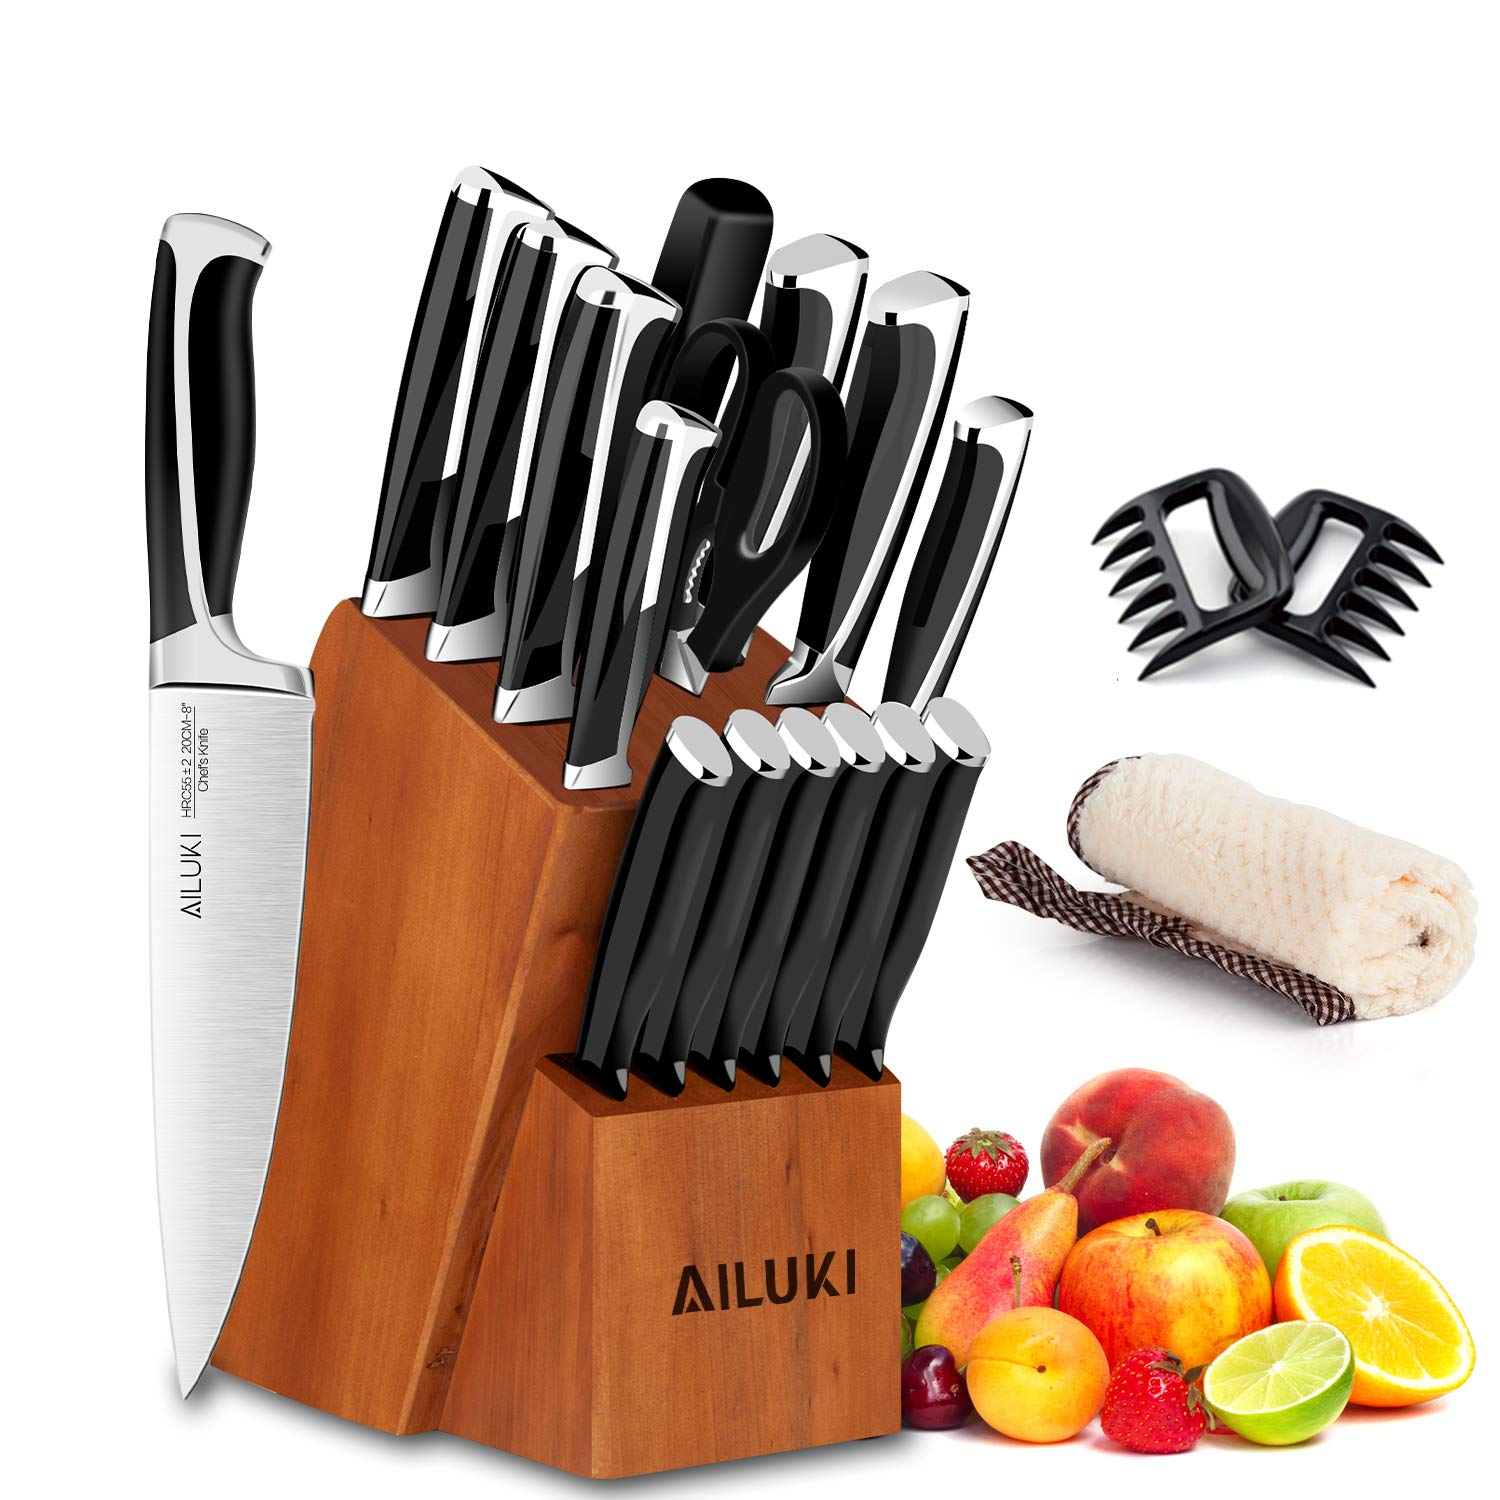 Knife Set, Kitchen Knife Set with Block, AILUKI 19 Pieces Stainless Steel Knife Set, Ergonomic Handle for Chef Knife Set with Gift Box, Ultra Sharp, Best Choice for Cooking by AILUKI